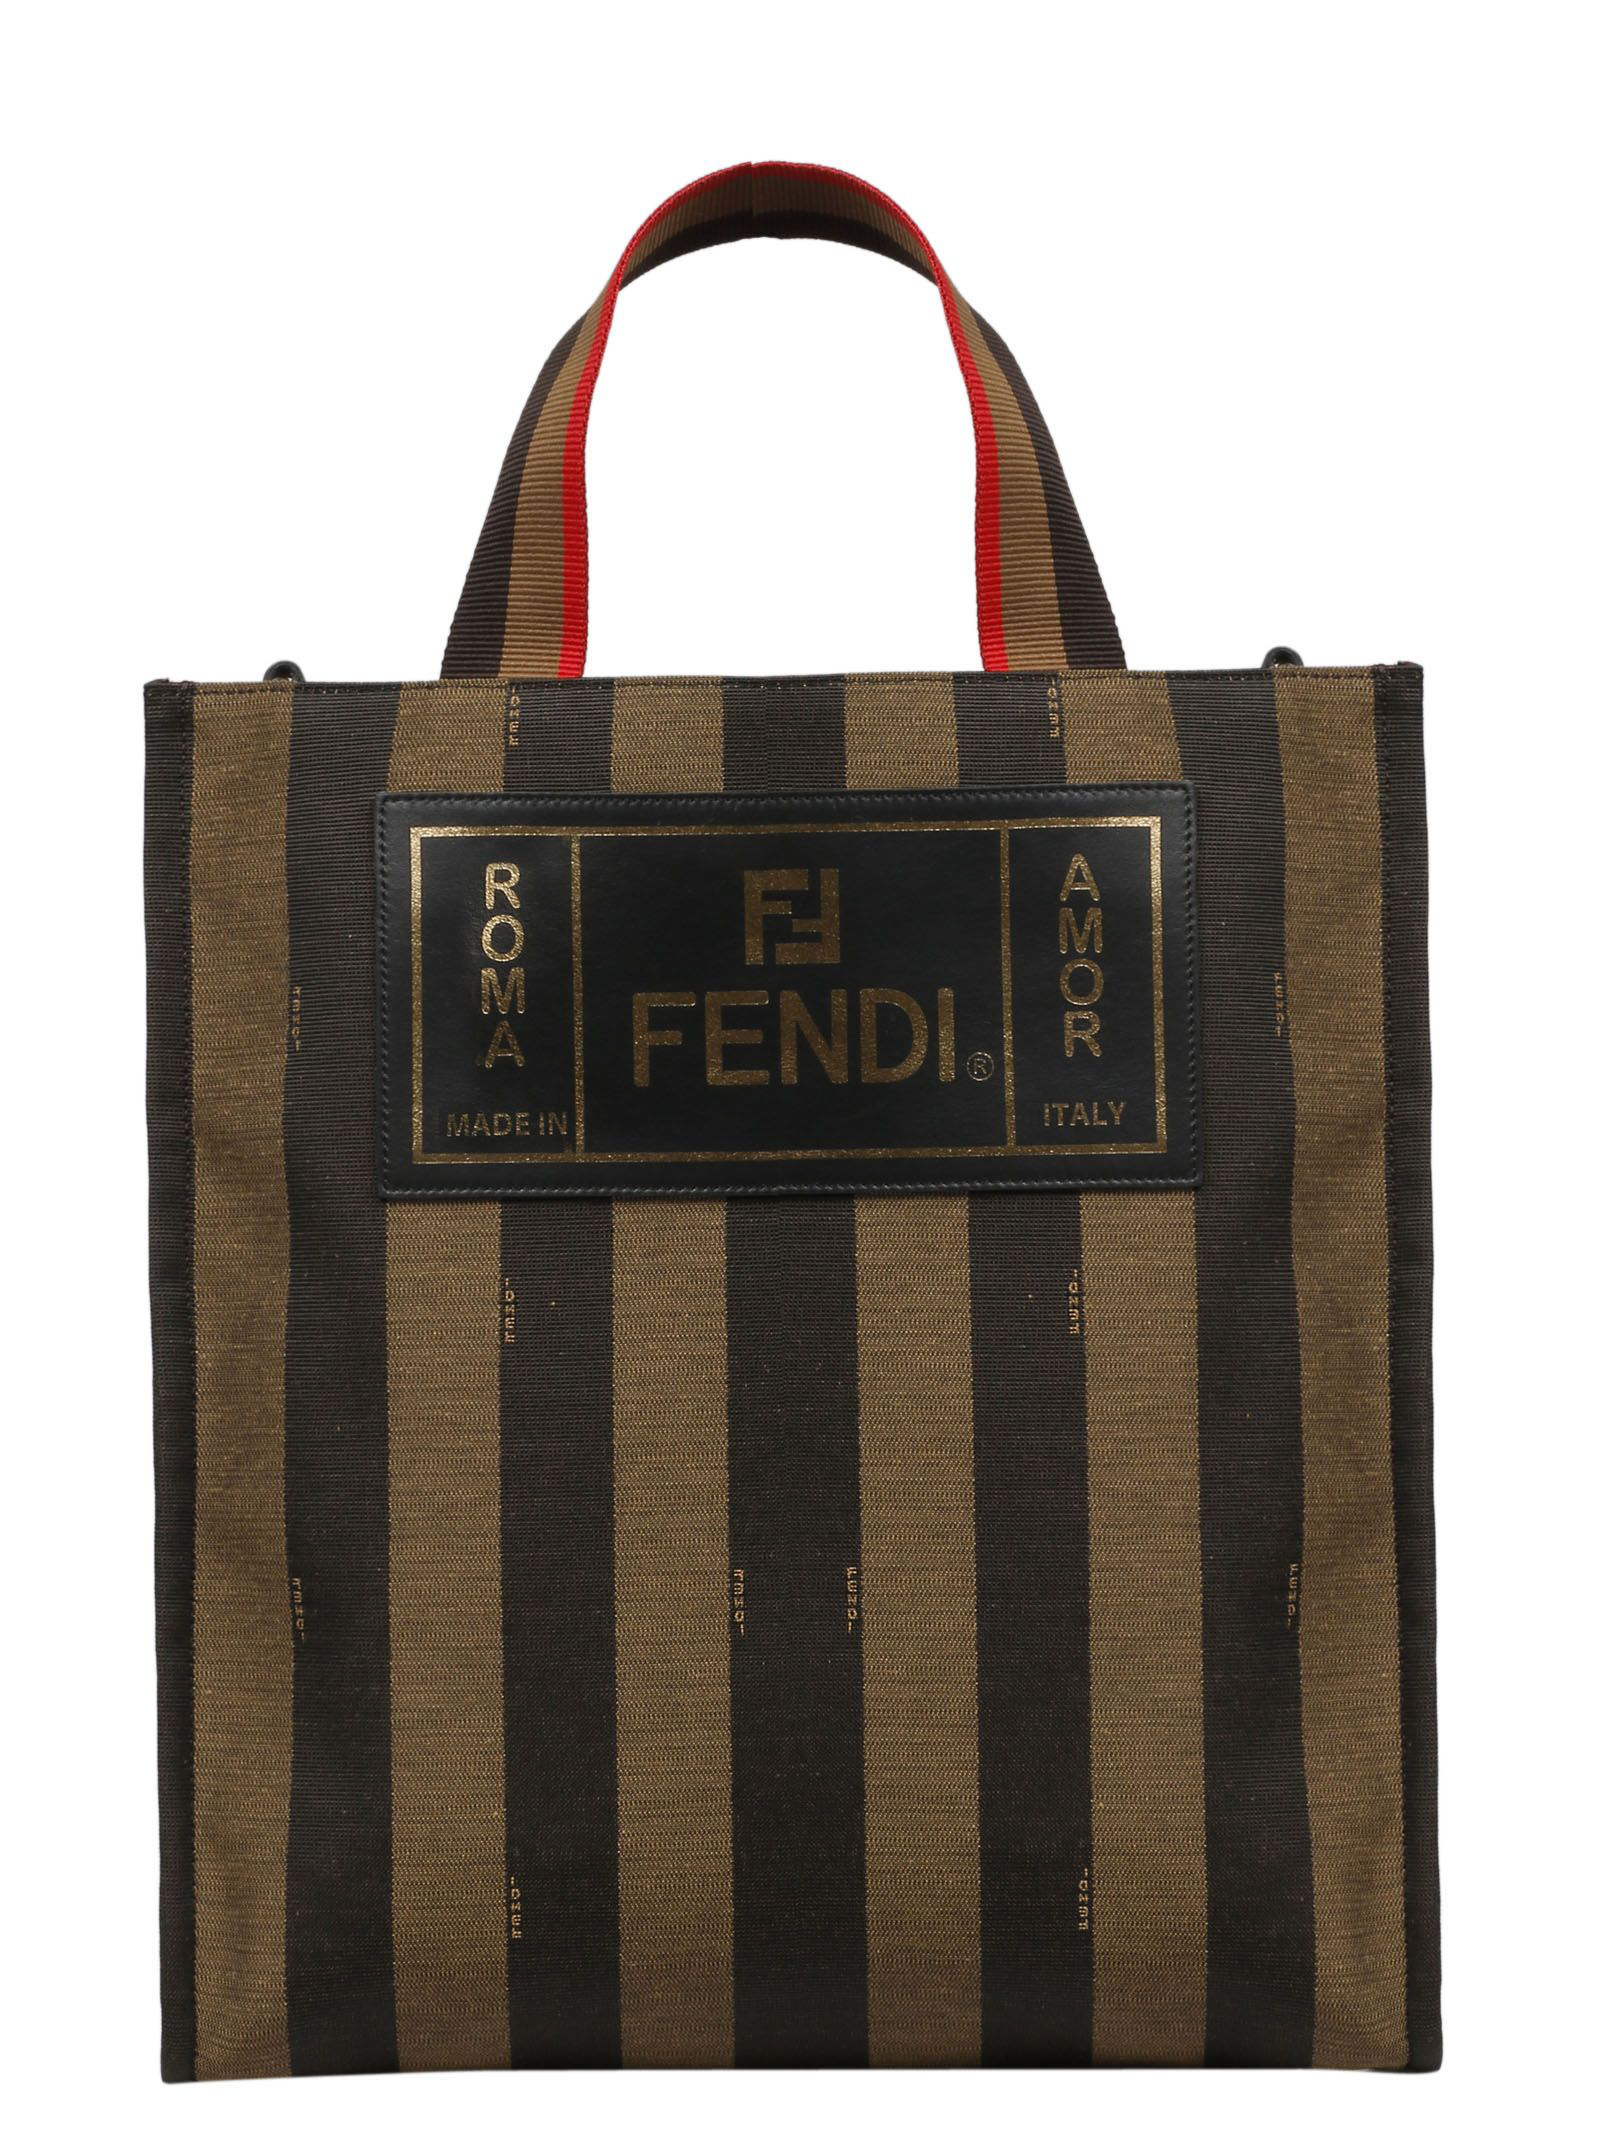 8f903437d53 Fendi Leather-Trimmed Striped Canvas Tote Bag - Brown - One Siz In F164H-